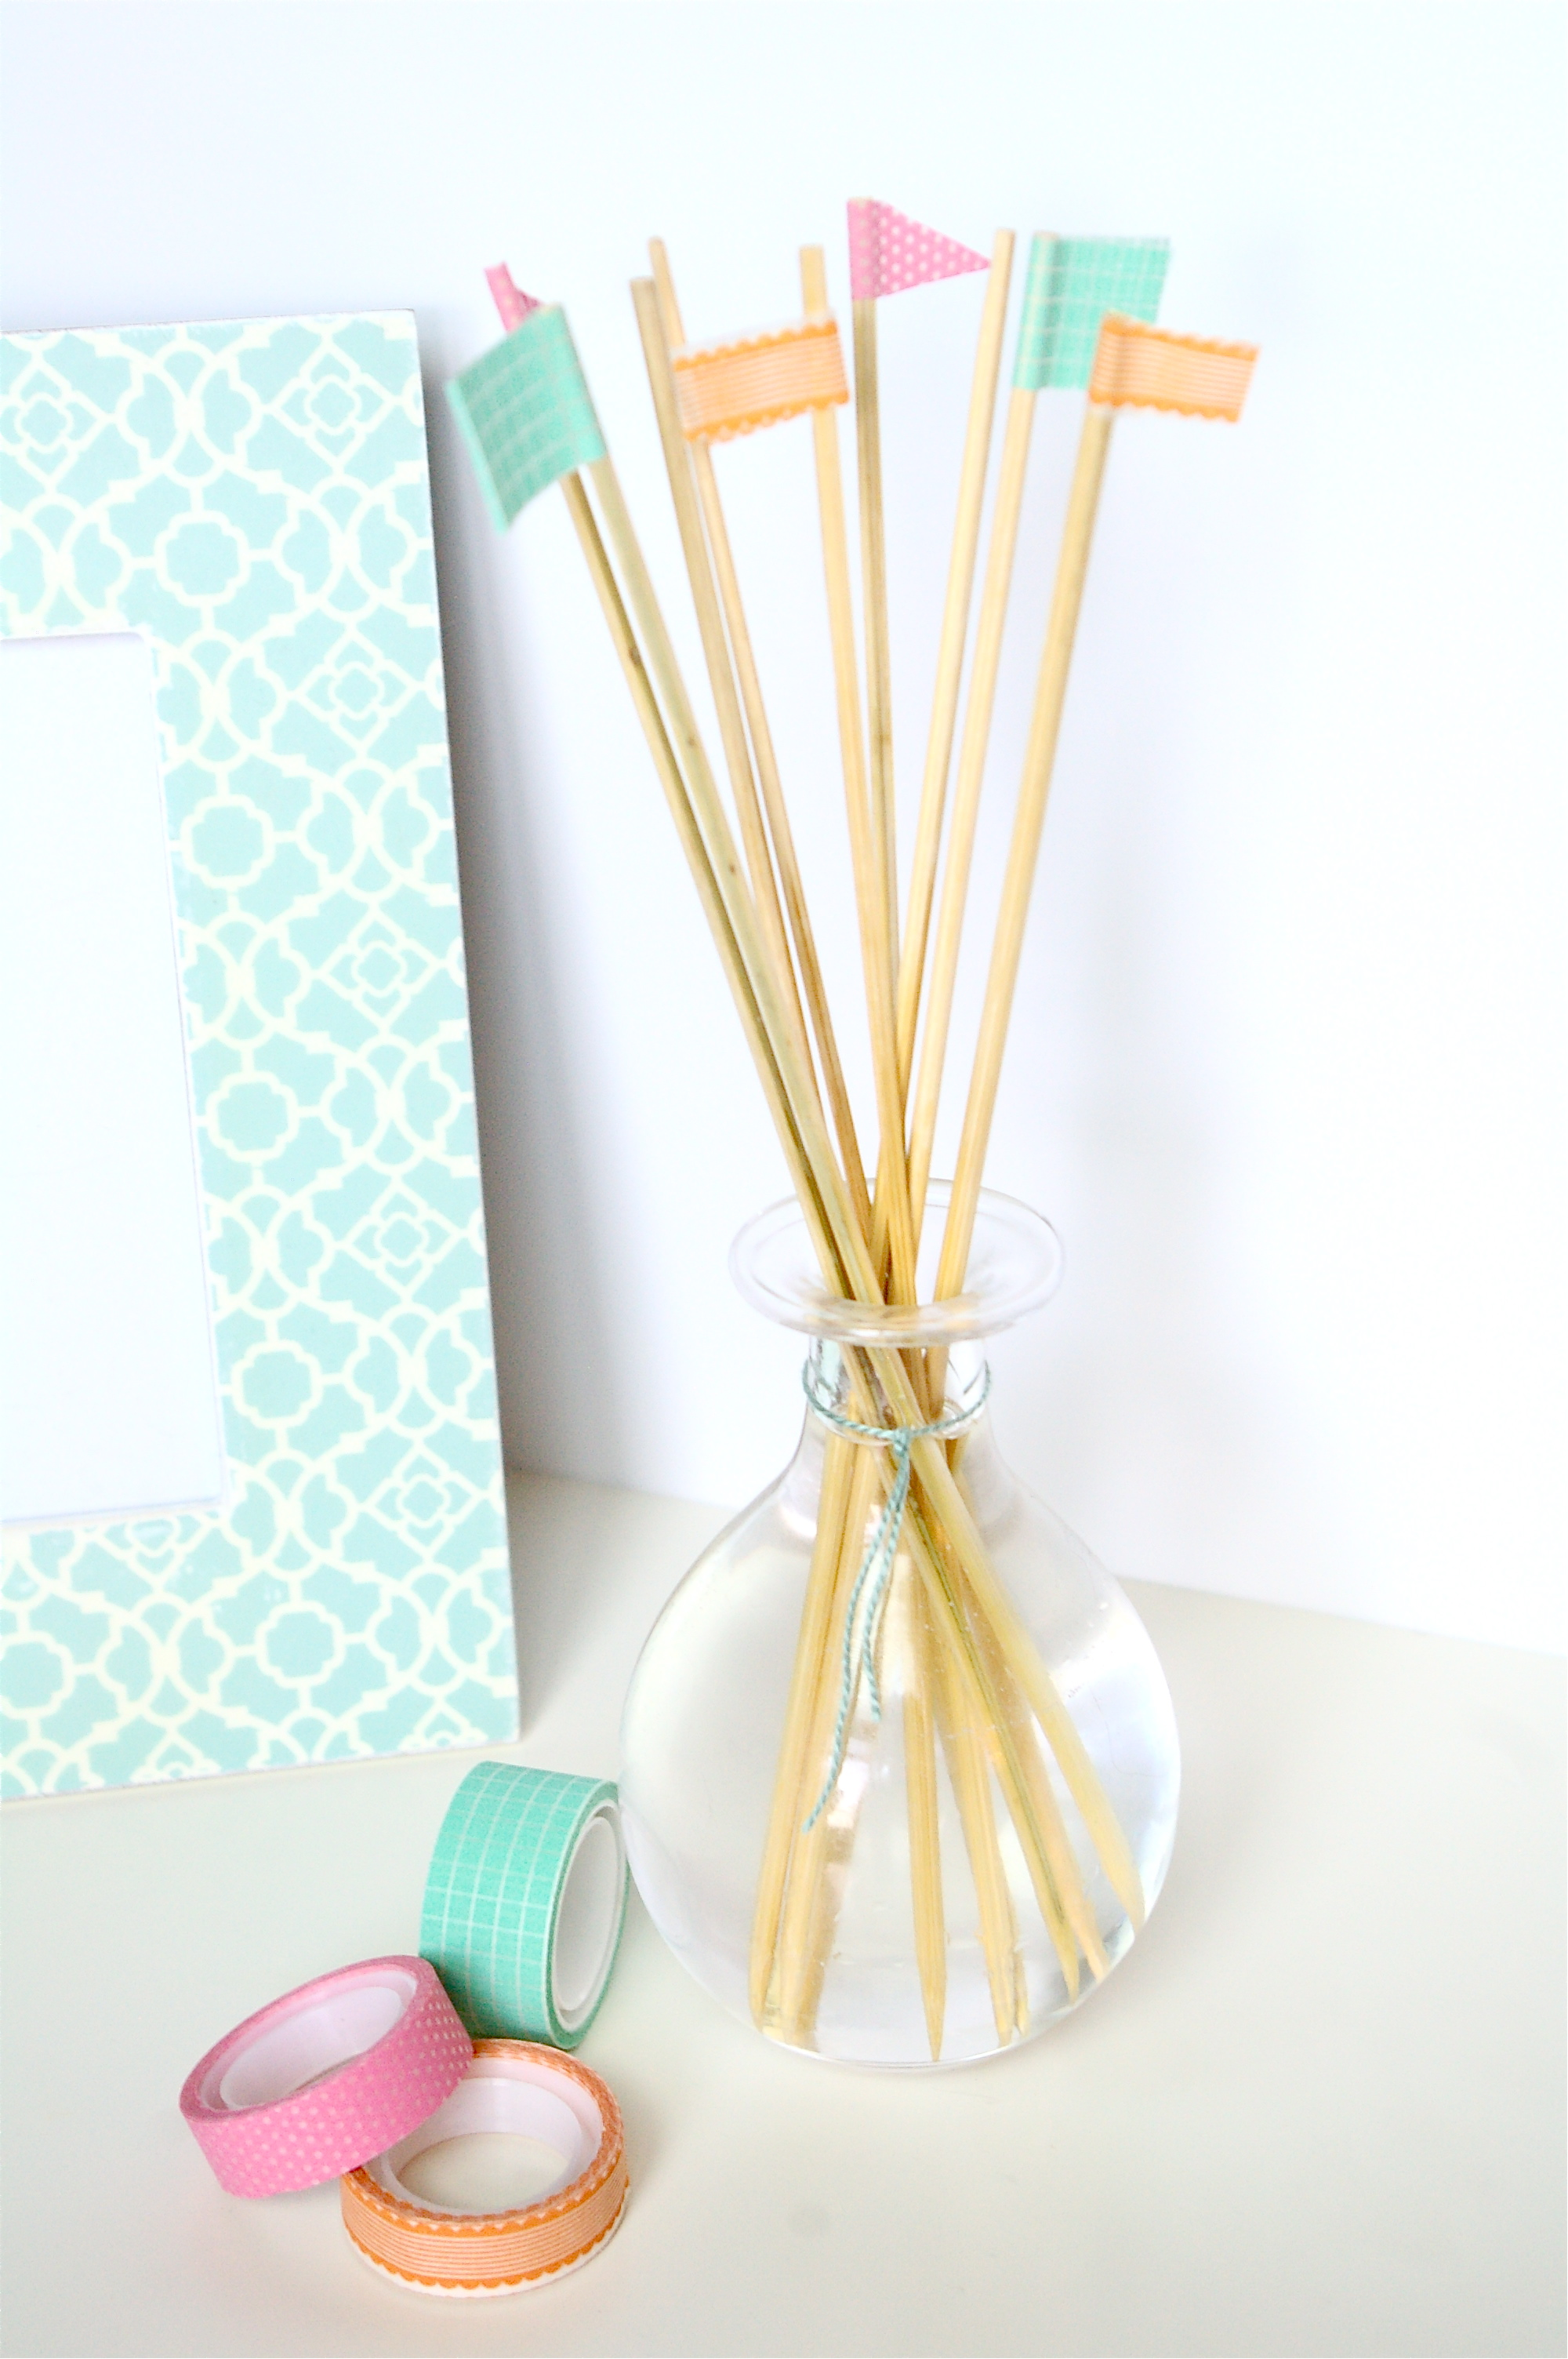 Diy Reed Diffuser Sugar Amp Cloth Diy Home Decor